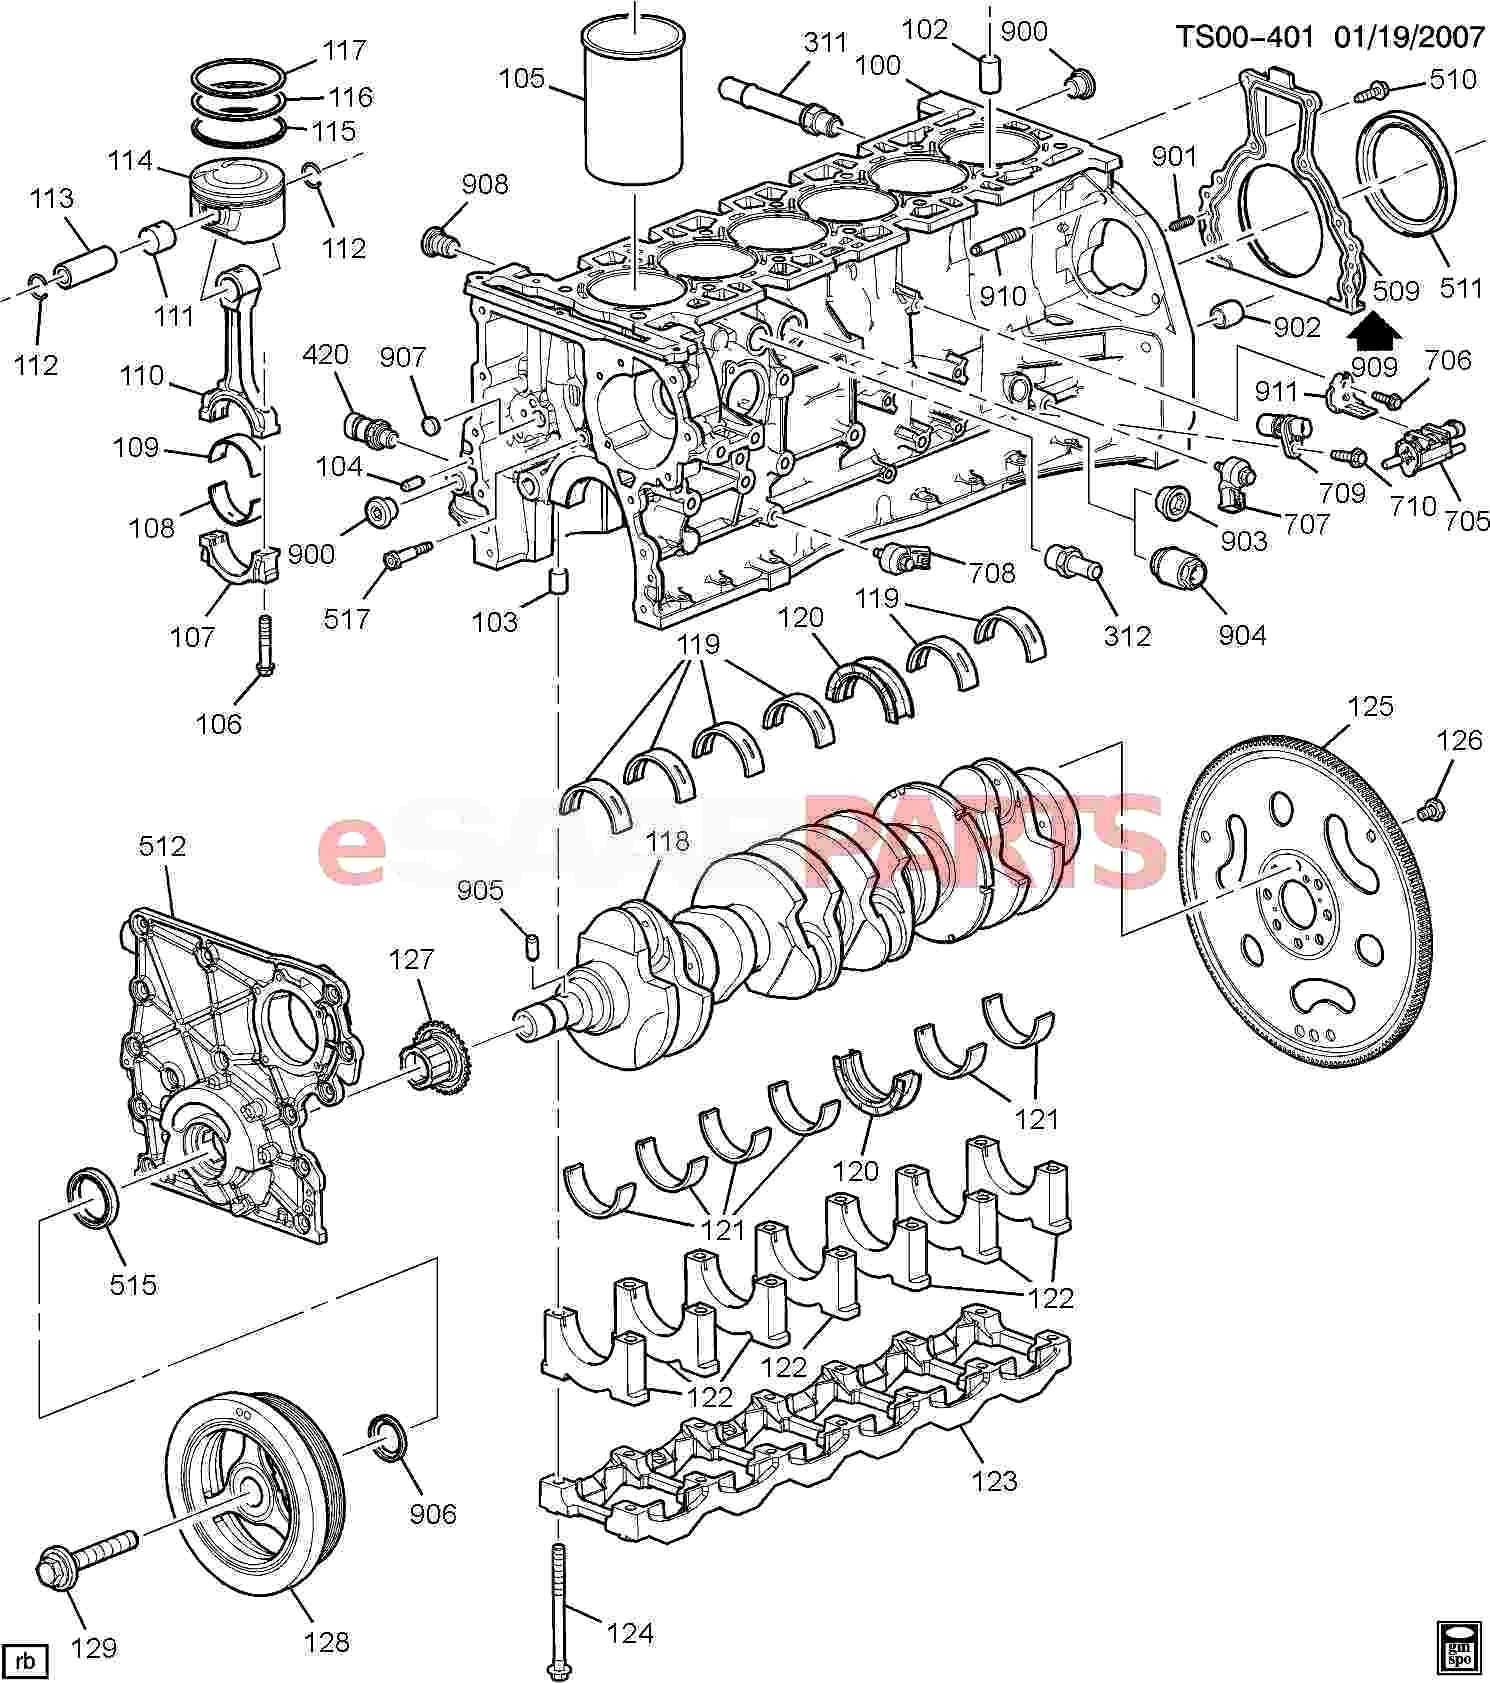 Car Parts Diagram Interior Car Parts Names with Diagram Pics Of Car Parts Diagram Interior Mercedes Benz Parts Diagram – Car Parts Diagram New Interior Car